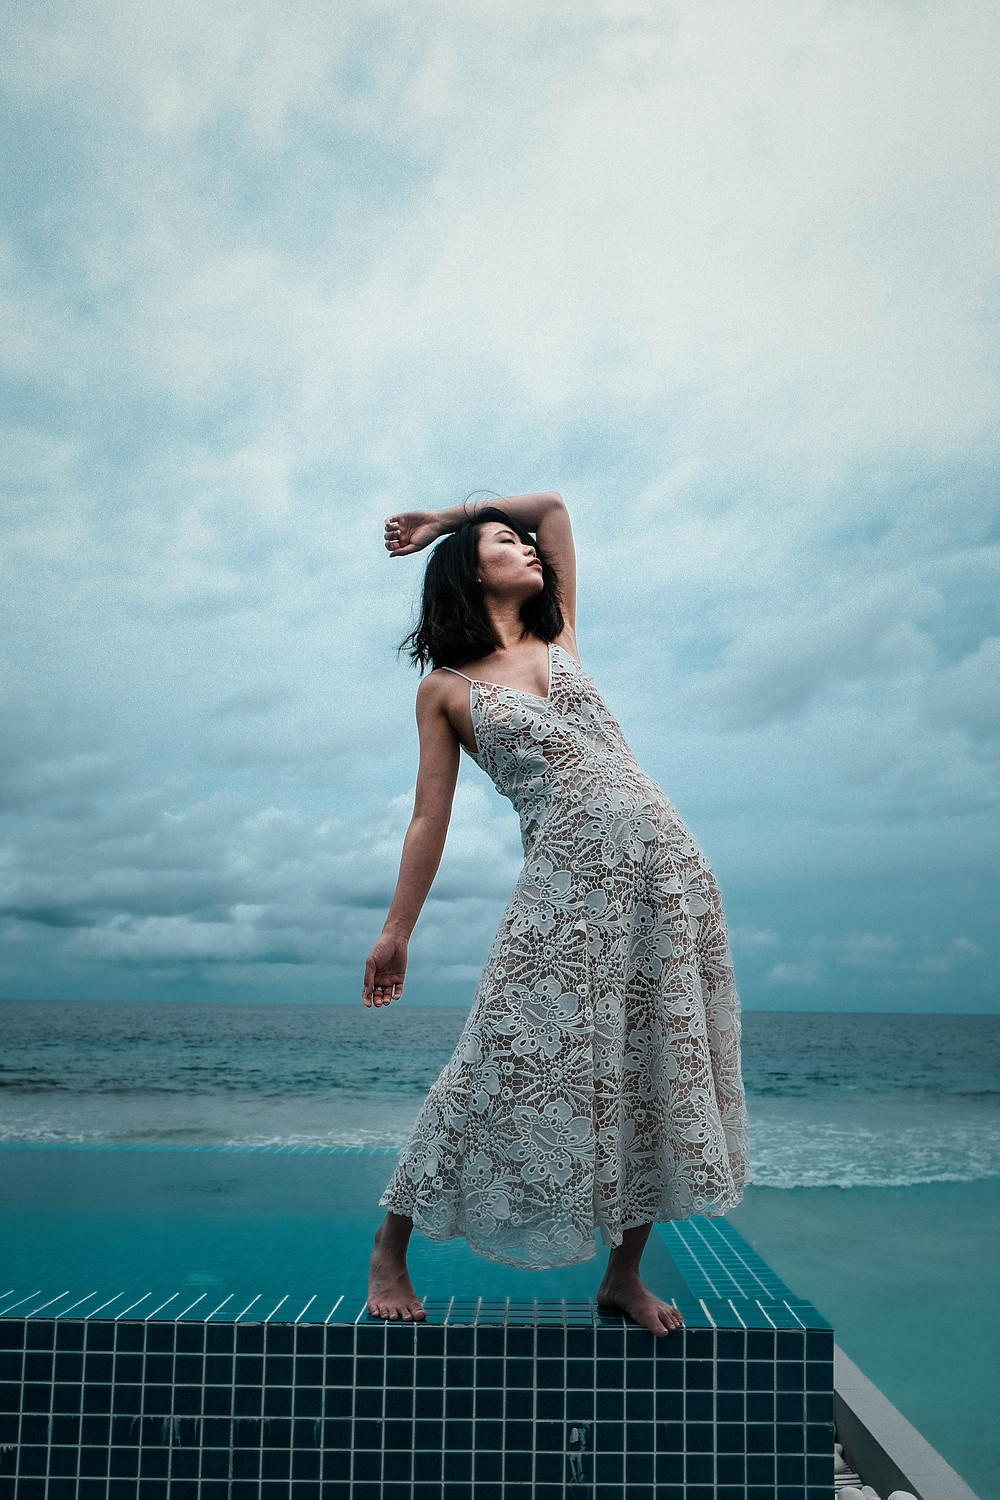 asian woman with shoulder length dark hair wearing a lacey spaghetti strap sundress dramatically dances on the edge of a pool next to the ocean in this shoot for trade image